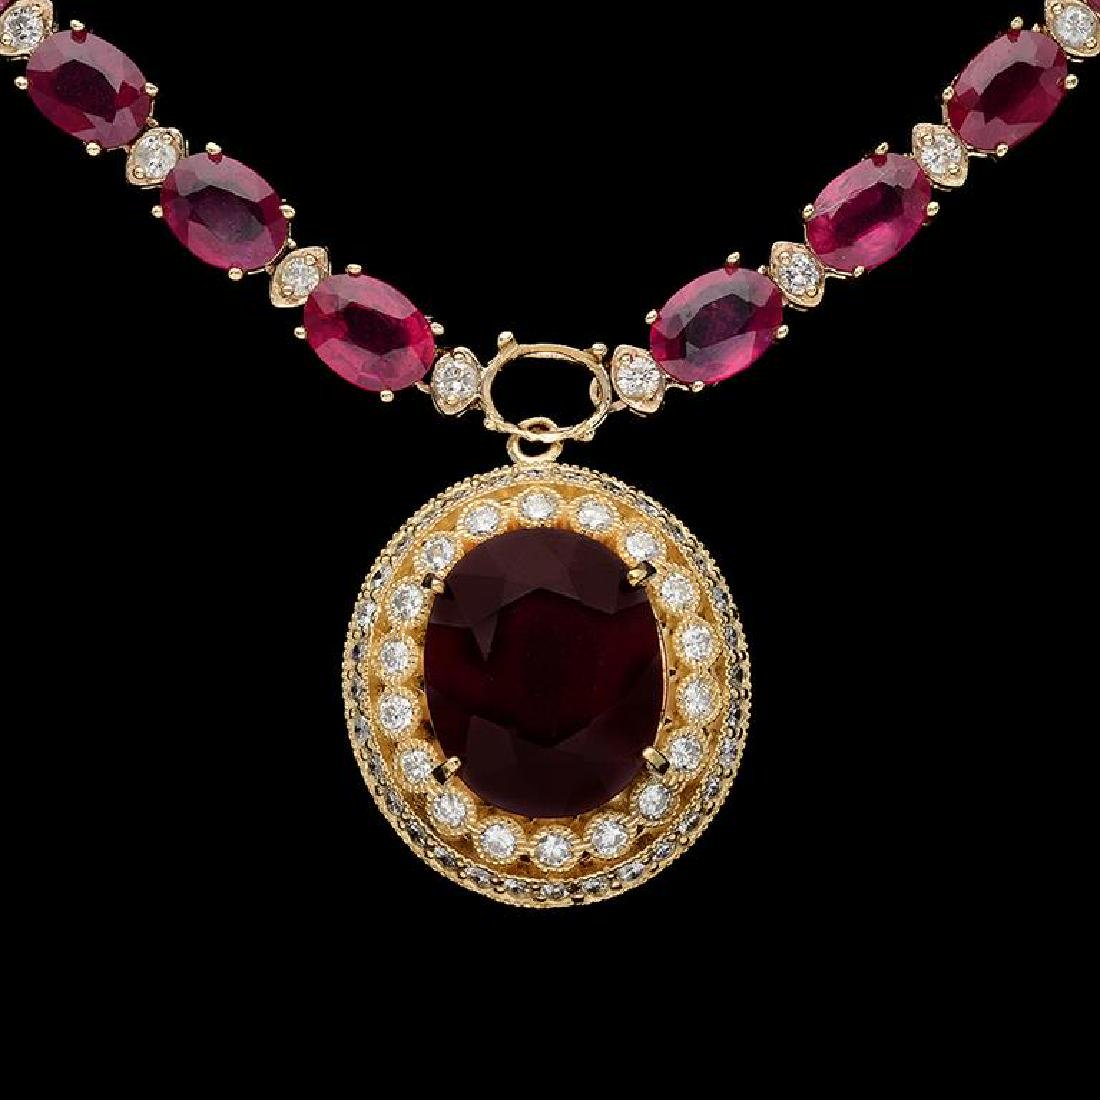 14K Gold 59.34ct Ruby 3.10ct Diamond Necklace - 2